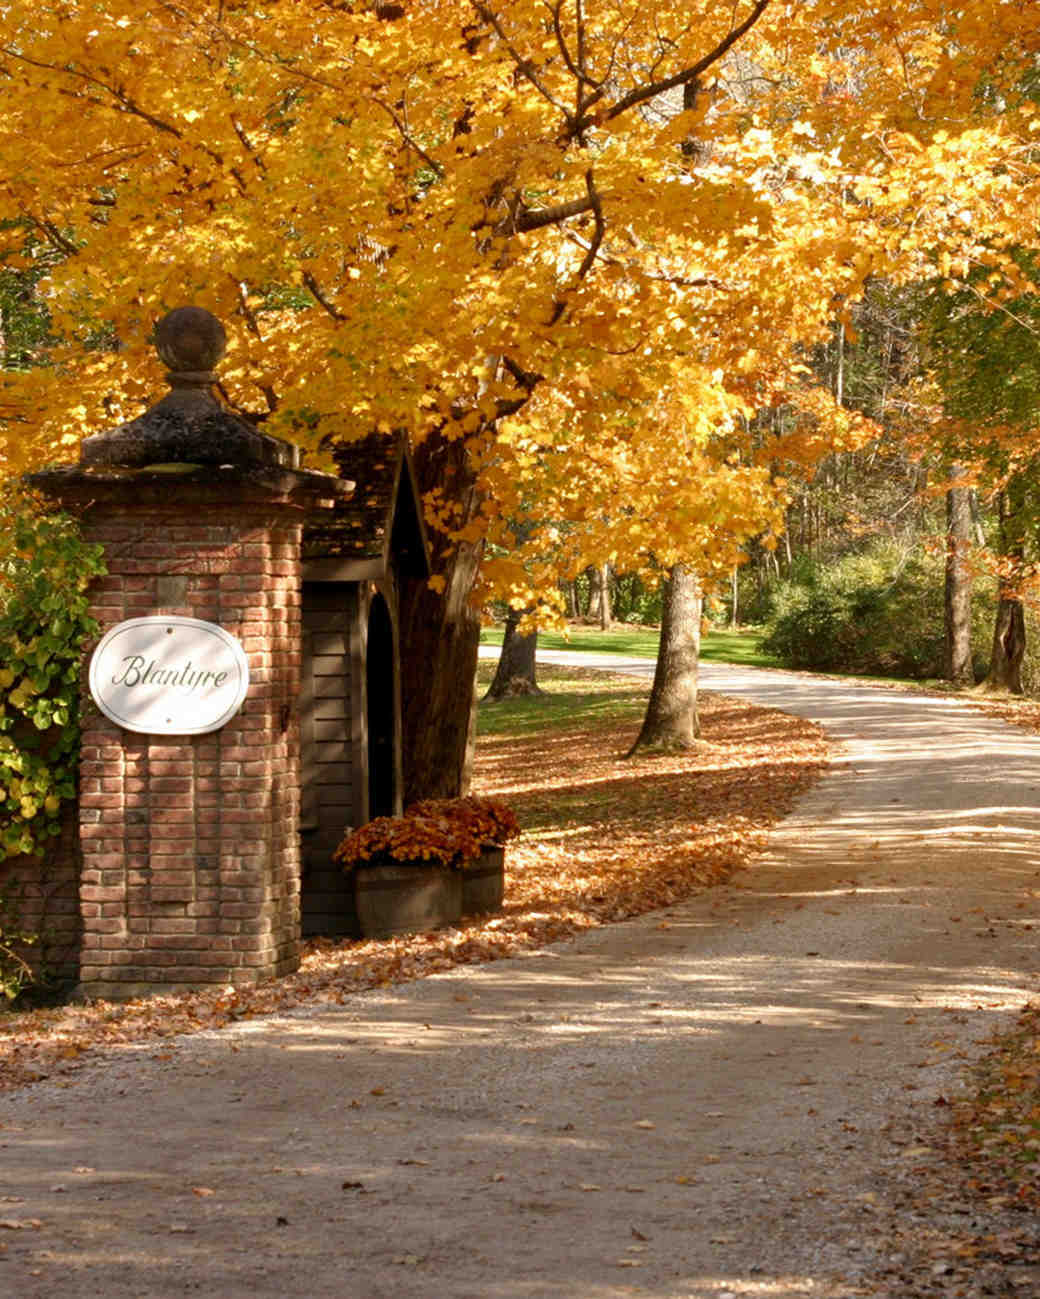 entrance to manor house with fall foliage